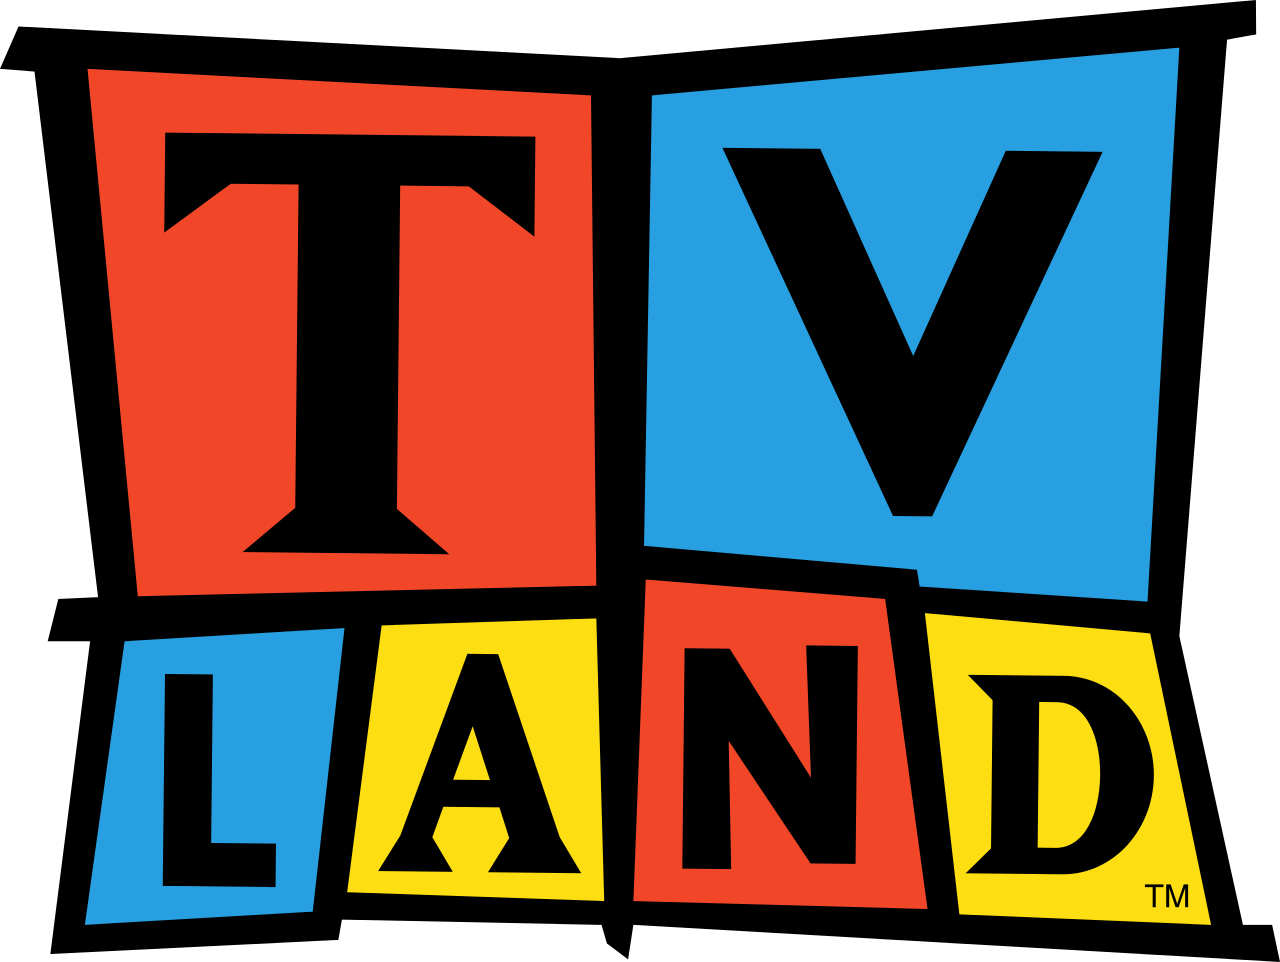 File:TV Land 1996.svg.